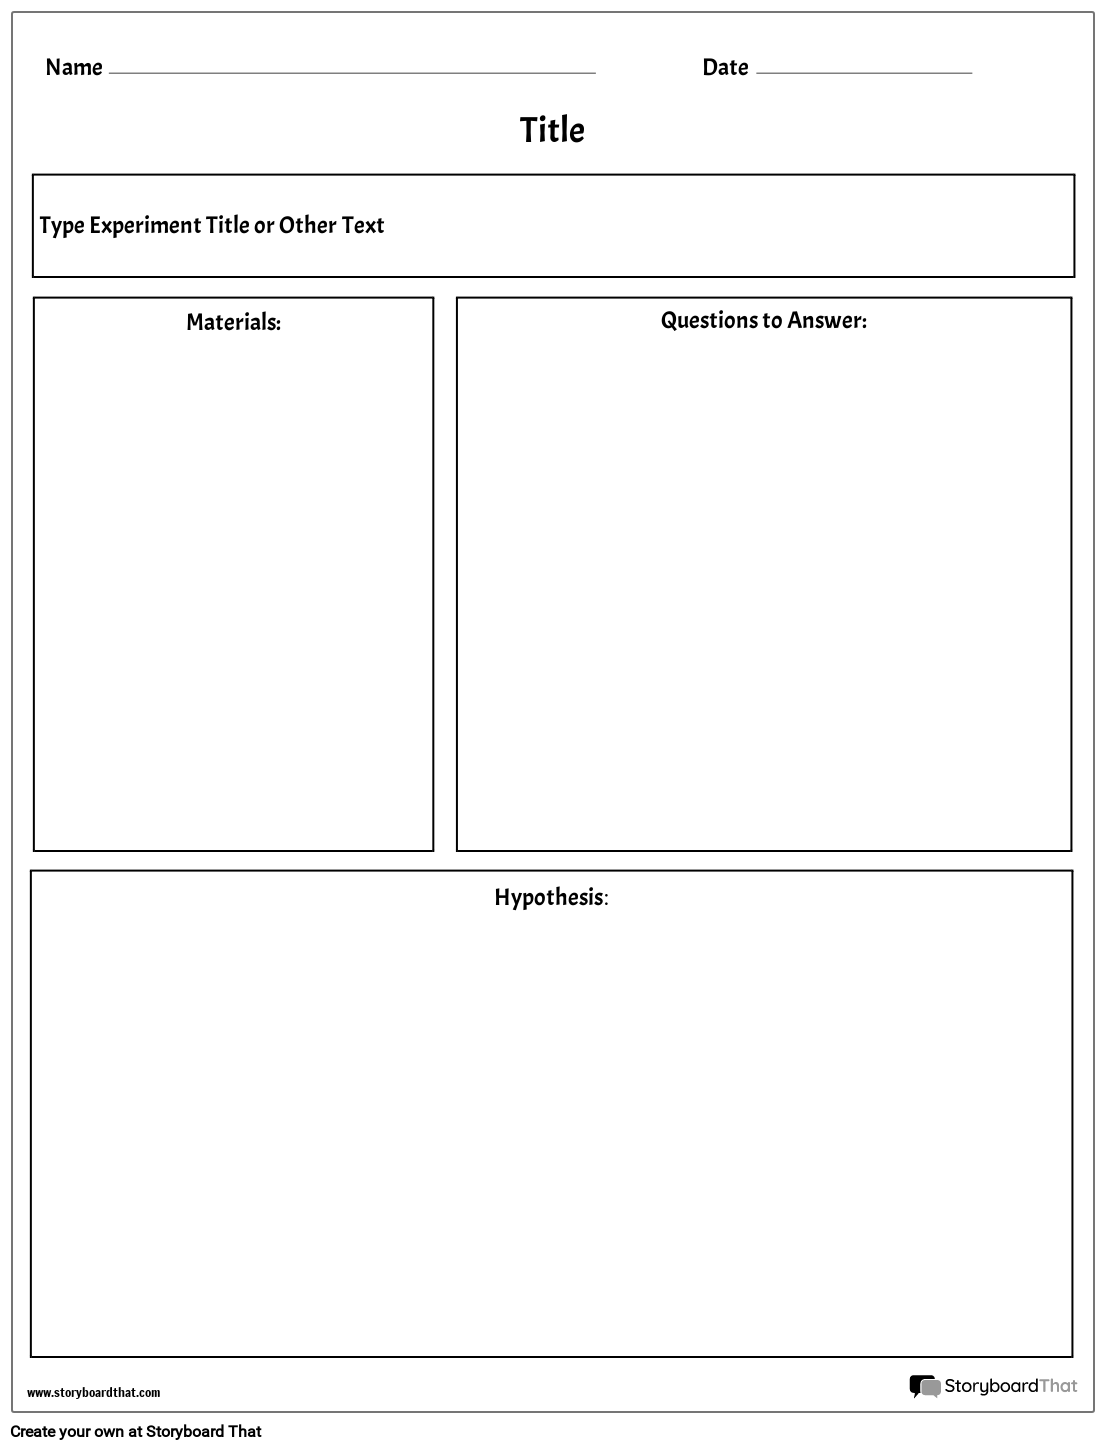 Plantilla de Laboratorio | Lab Worksheet Maker | Storyboard That